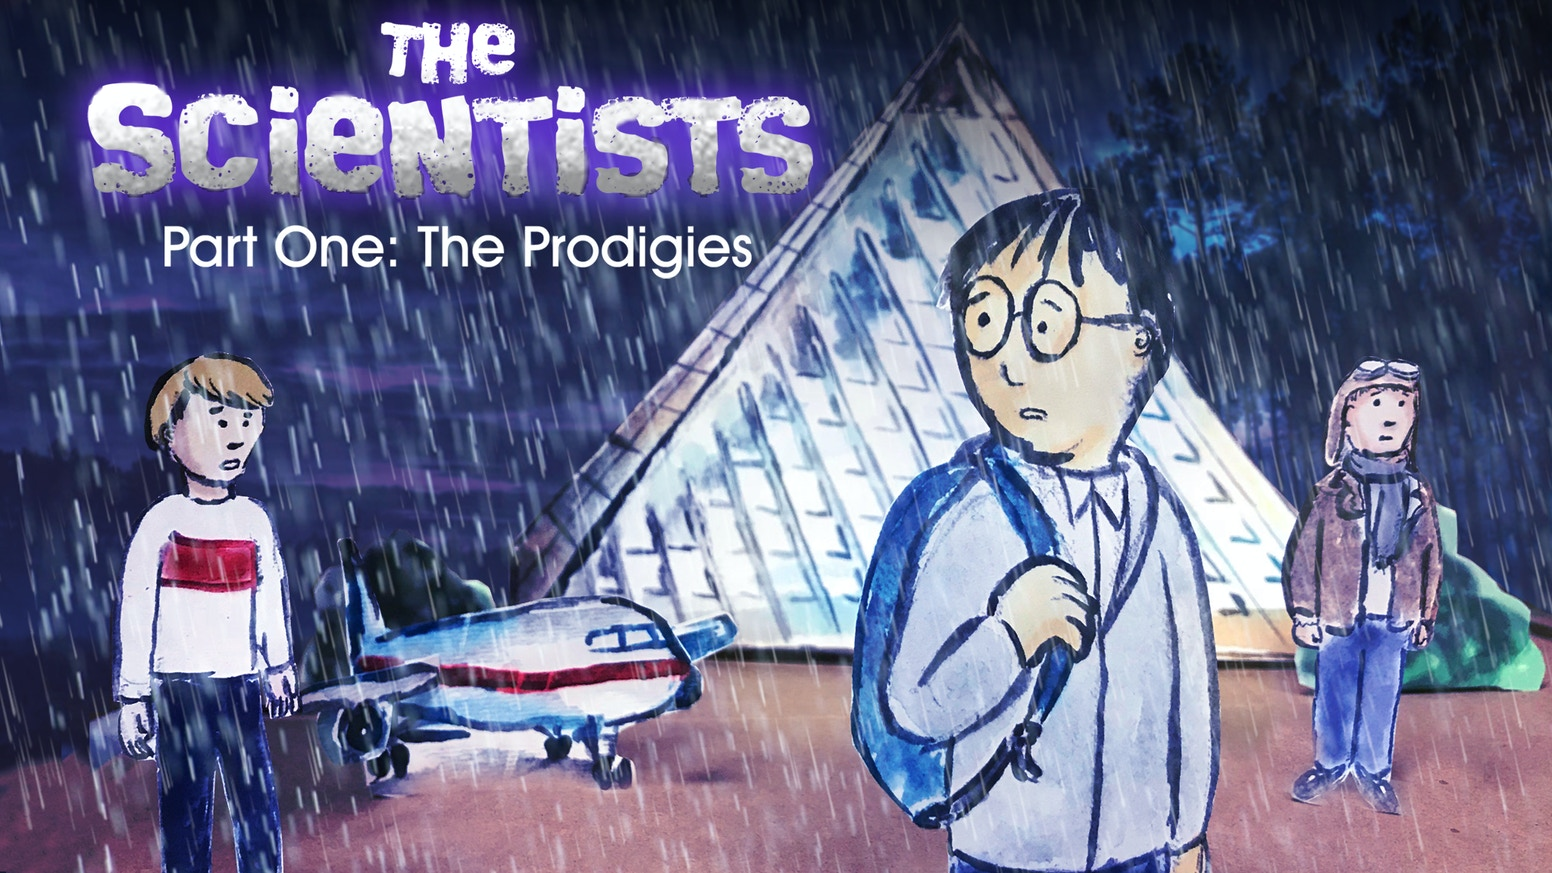 A young genius and his fellow prodigies are kidnapped on their way to a science fair and must use their wits to escape.